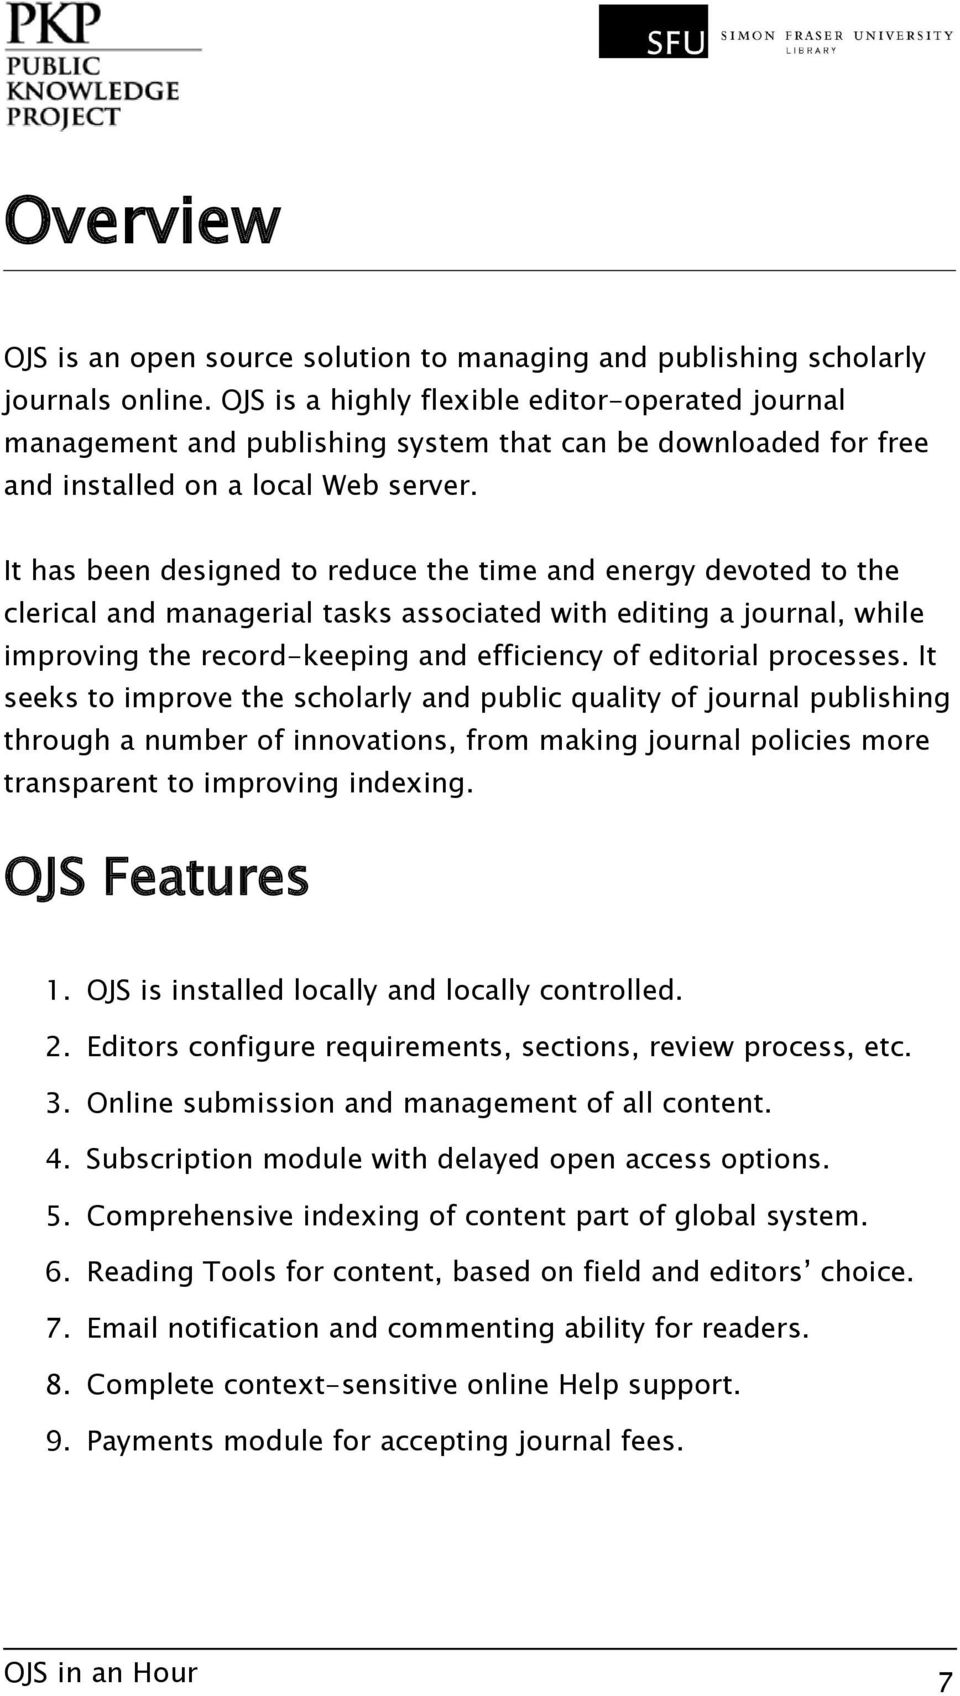 It has been designed to reduce the time and energy devoted to the clerical and managerial tasks associated with editing a journal, while improving the record-keeping and efficiency of editorial